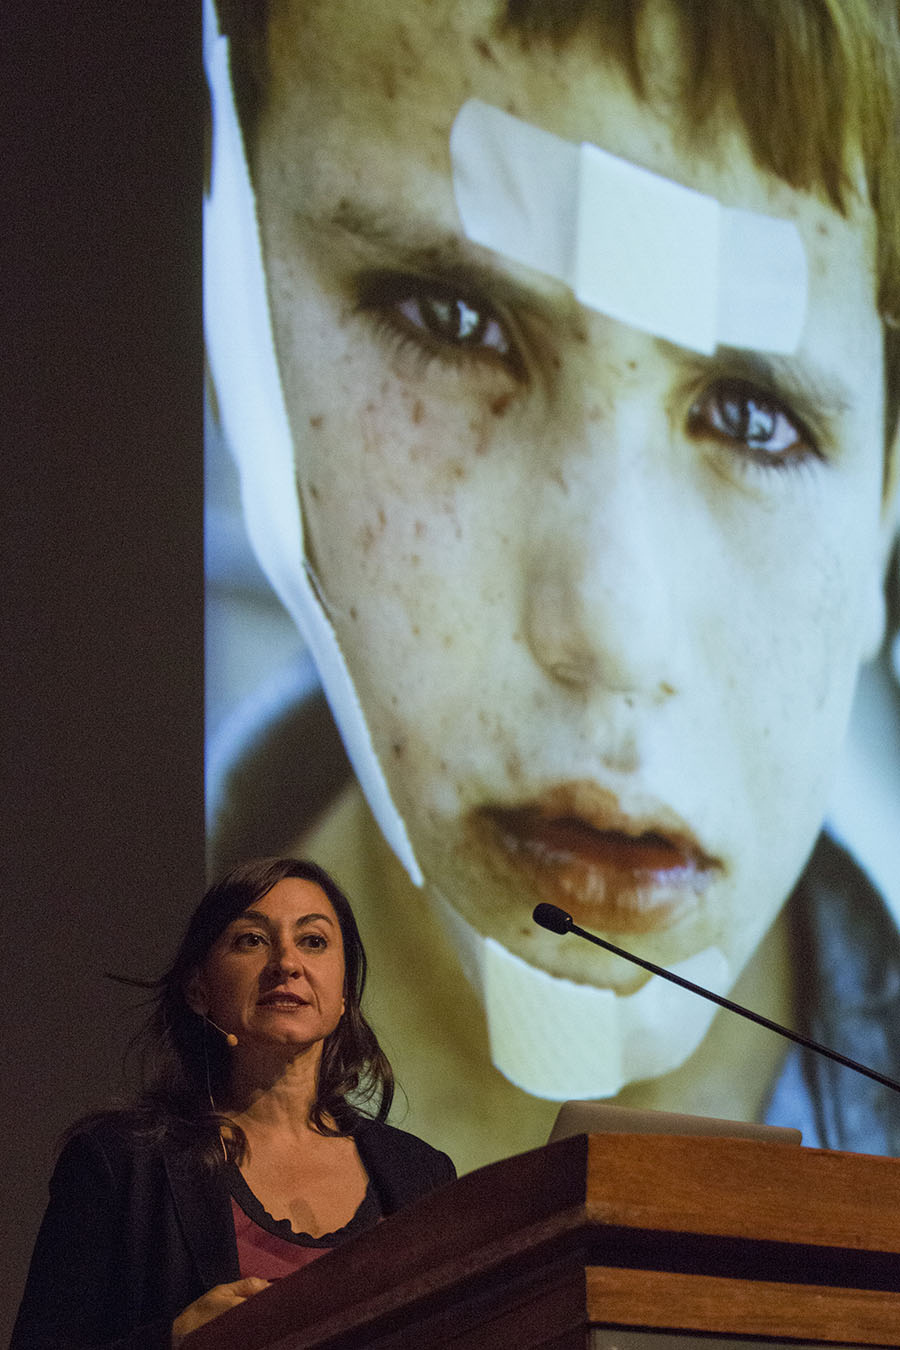 Lynsey Addario at the podium with her photo of an injured boy behind her.